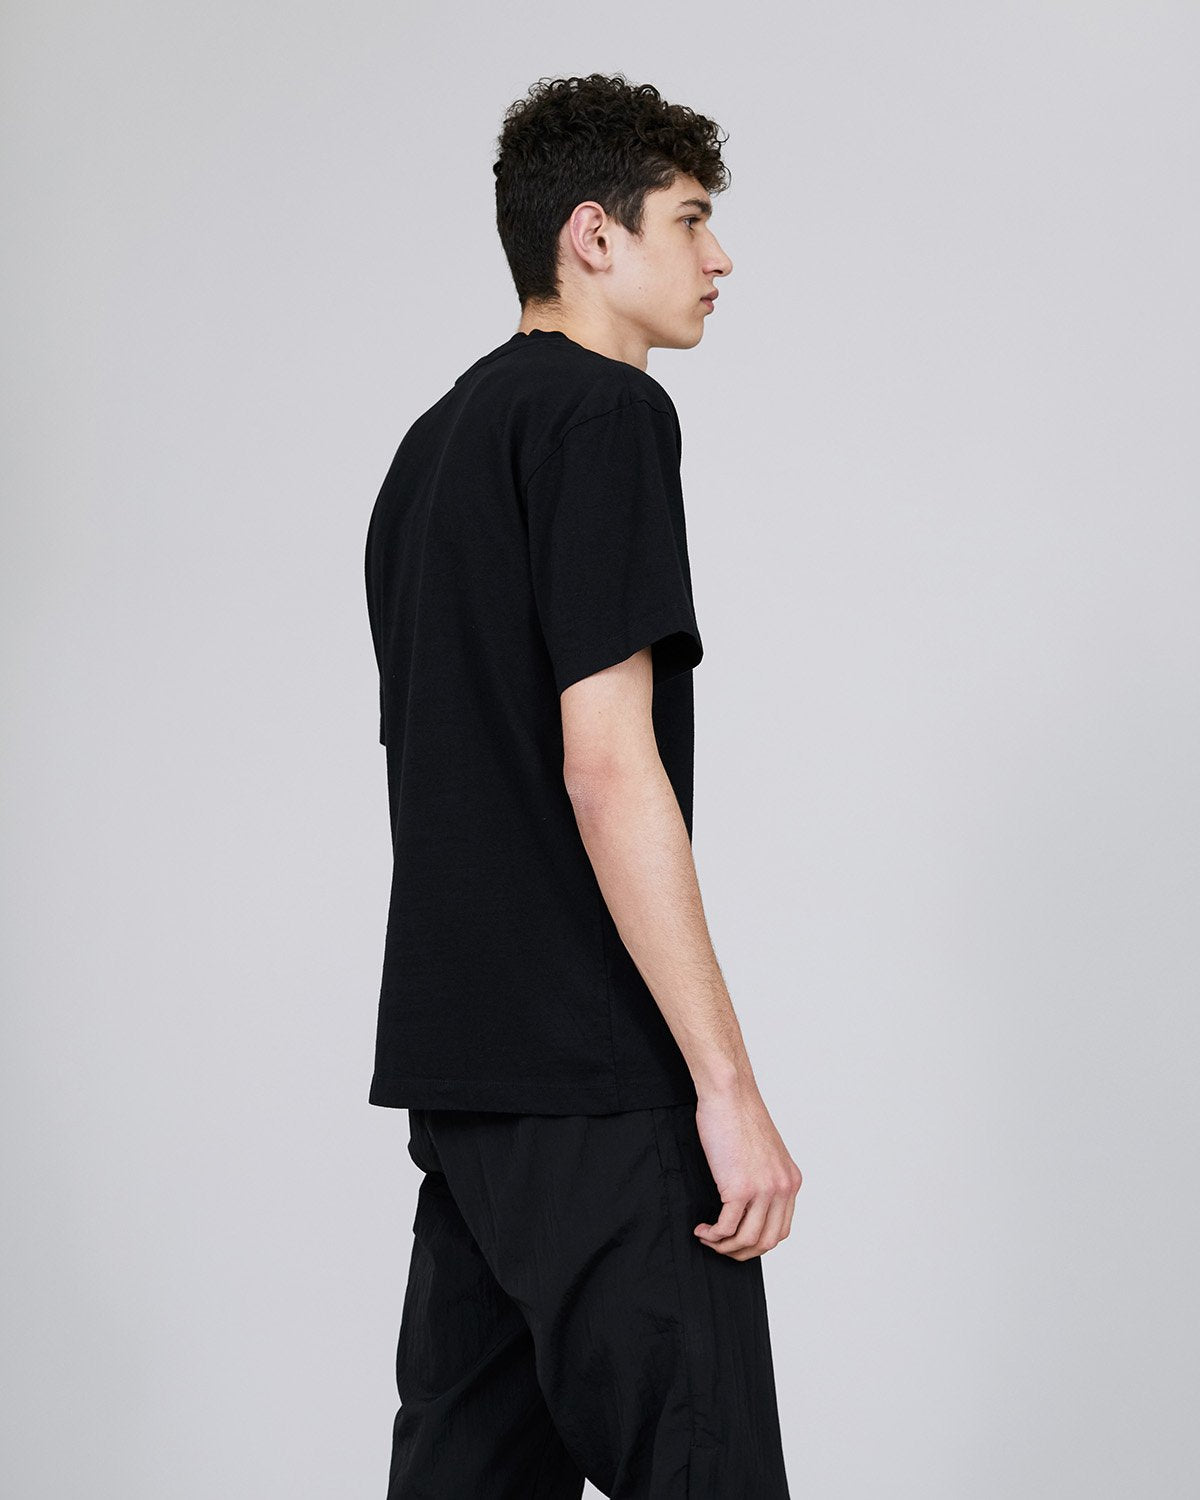 ØLÅF Worldwide T Black, Portuguese fabric, 100% cotton (220 grams/sqm), Post wash, Fine ribbed collar, Made in Portugal